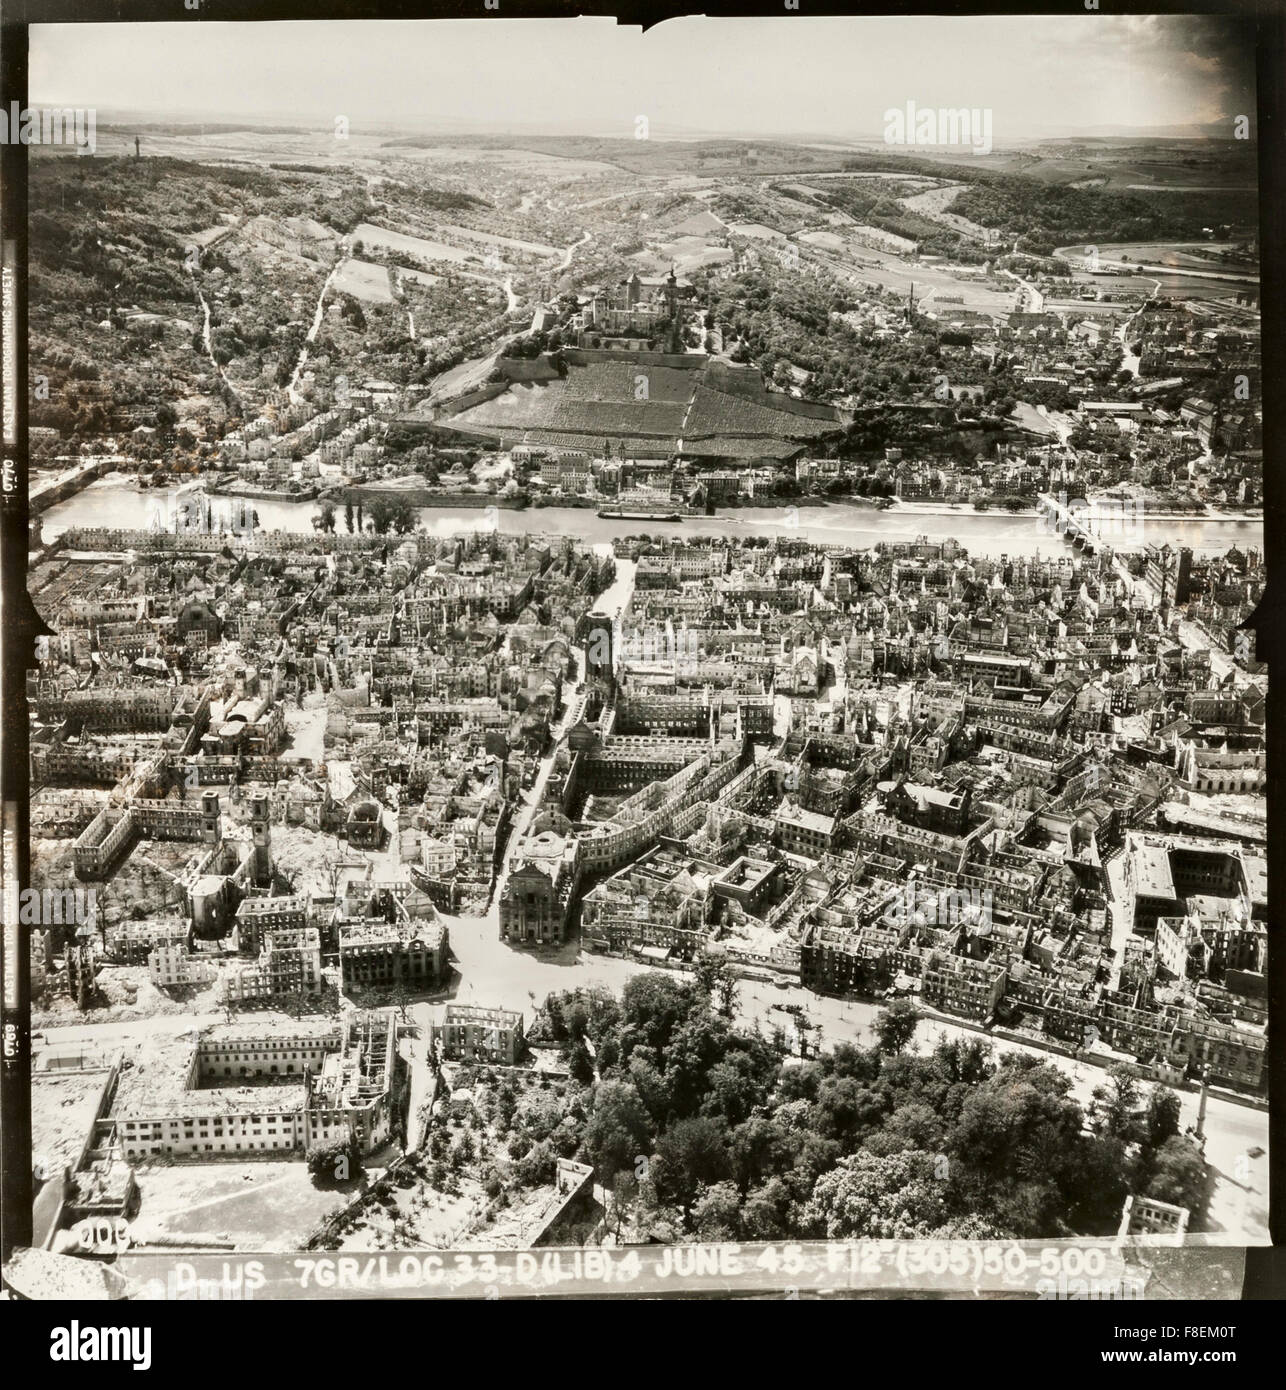 An aerial reconnaissance photograph of the historic German city of Würzburg in ruins after a massive RAF bombing - Stock Image